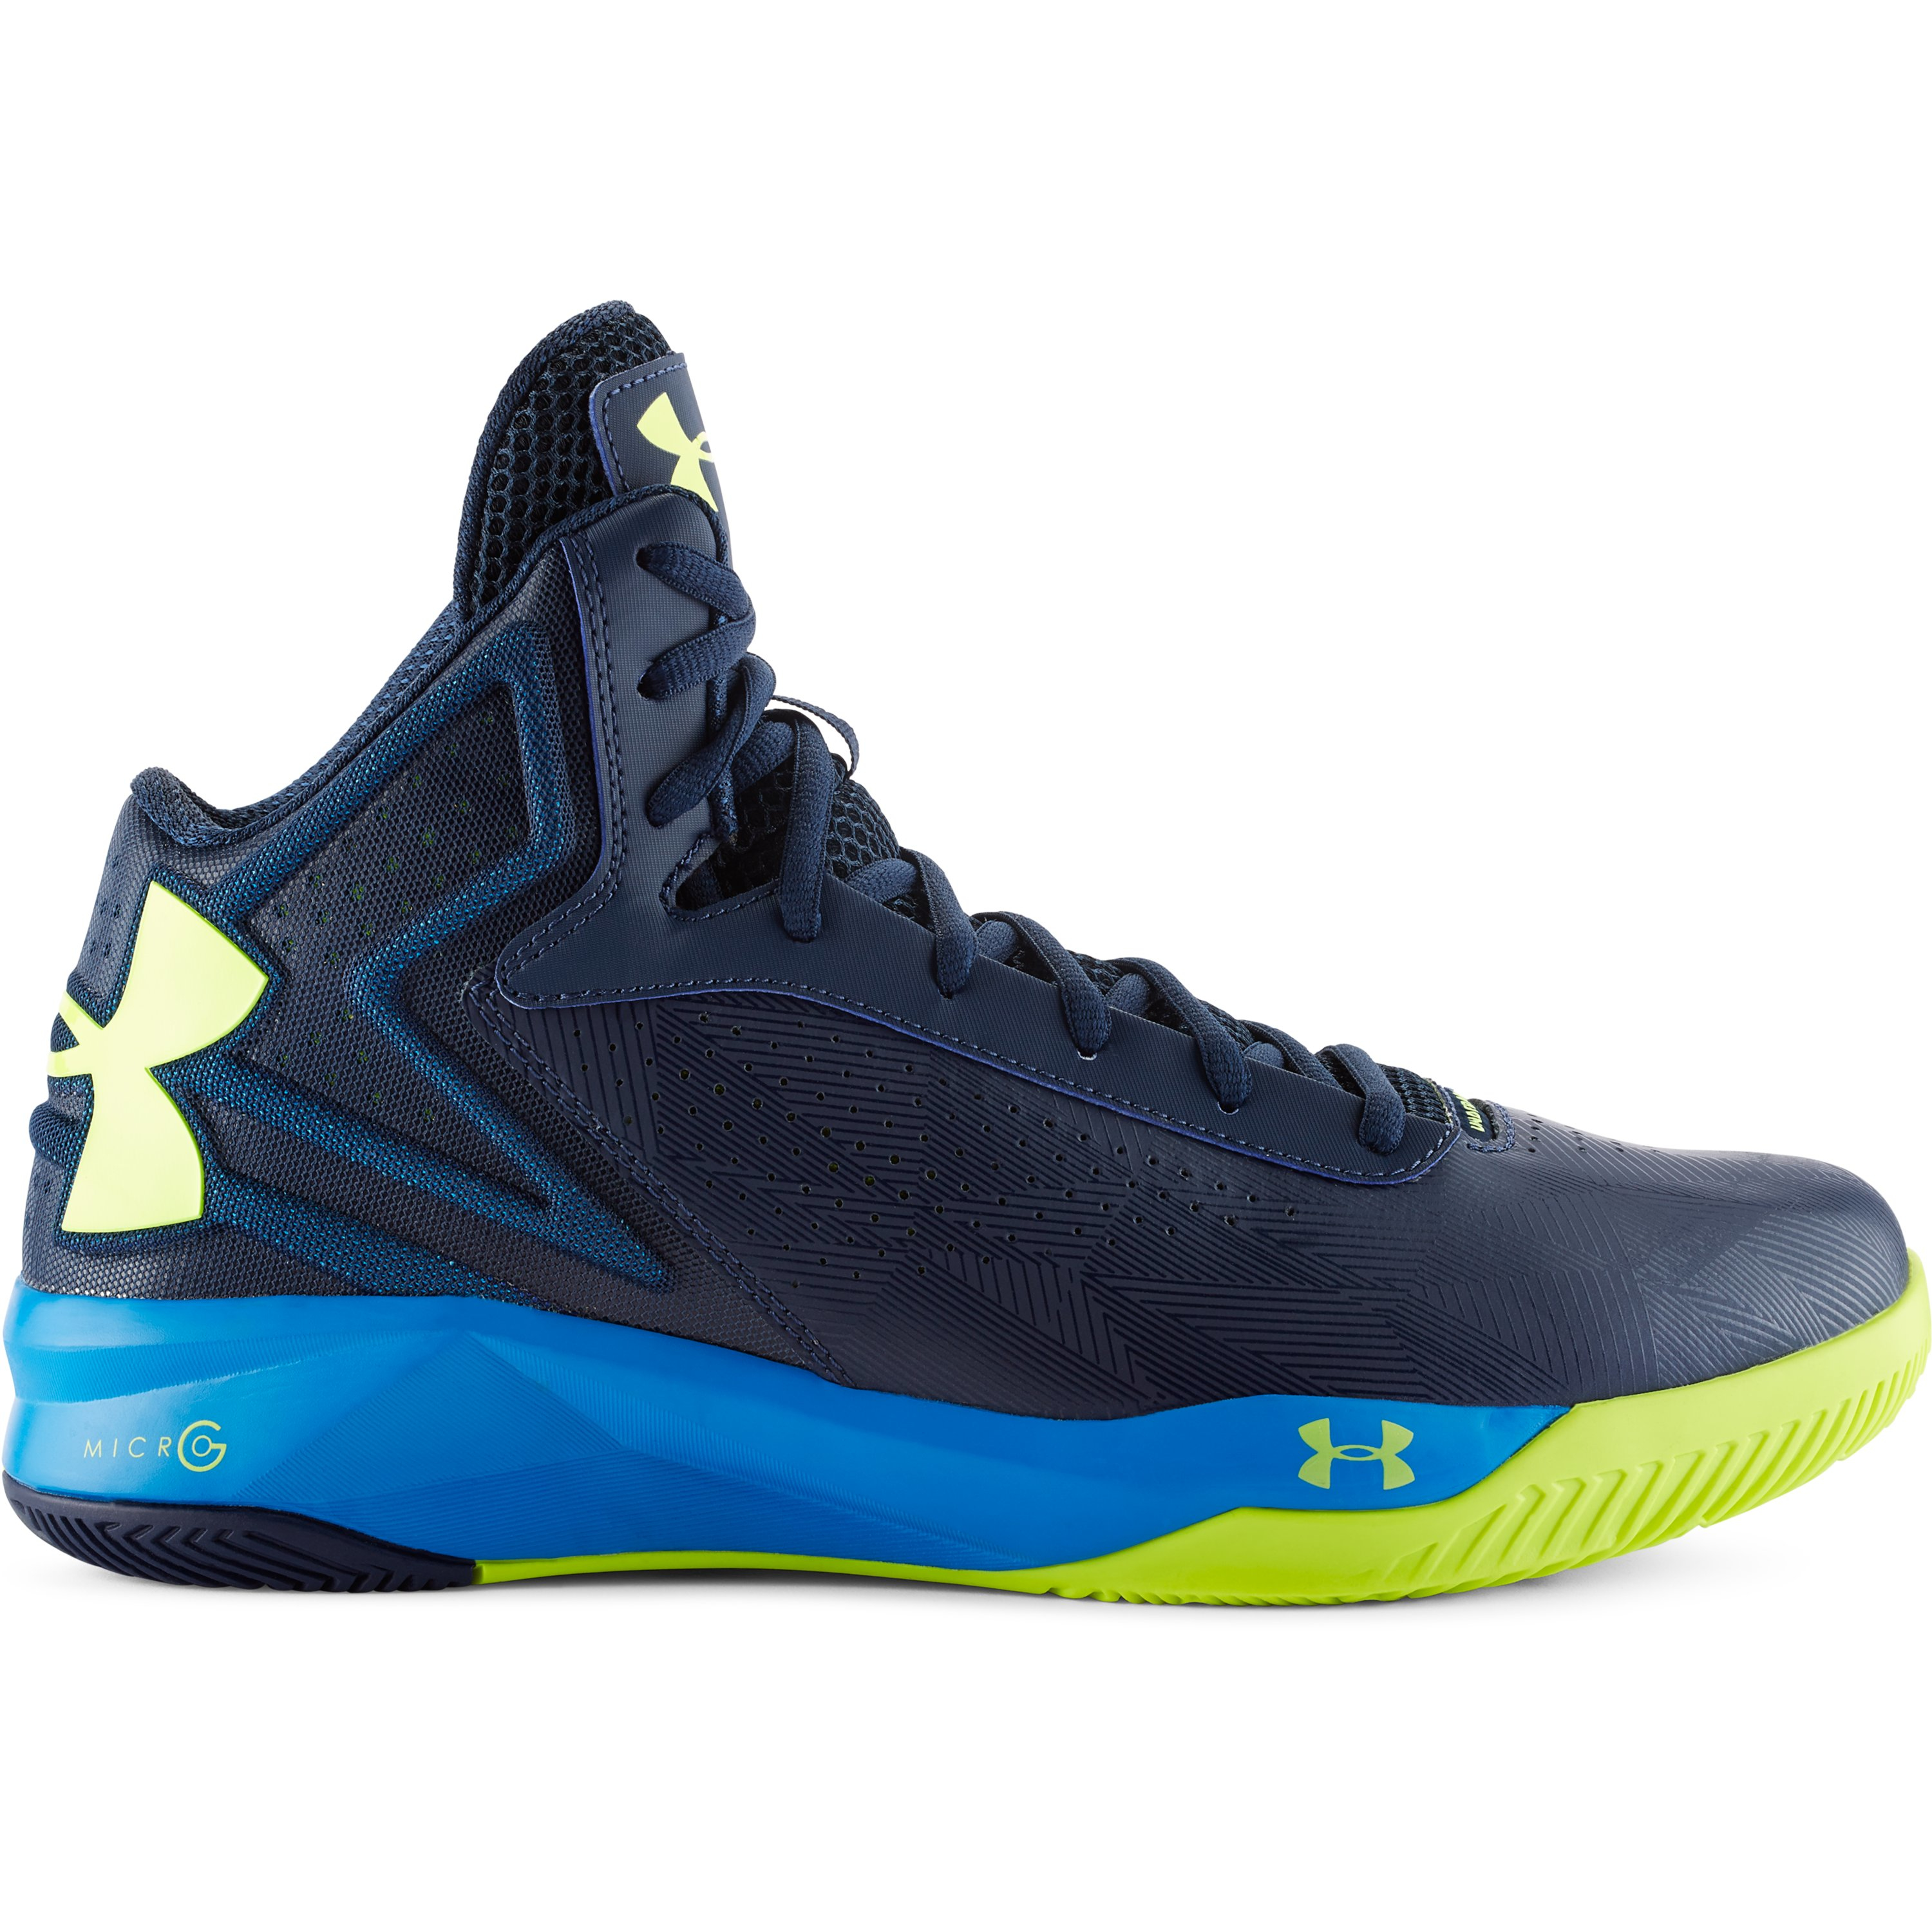 Under Armour Trainers Shoes Boots Mens